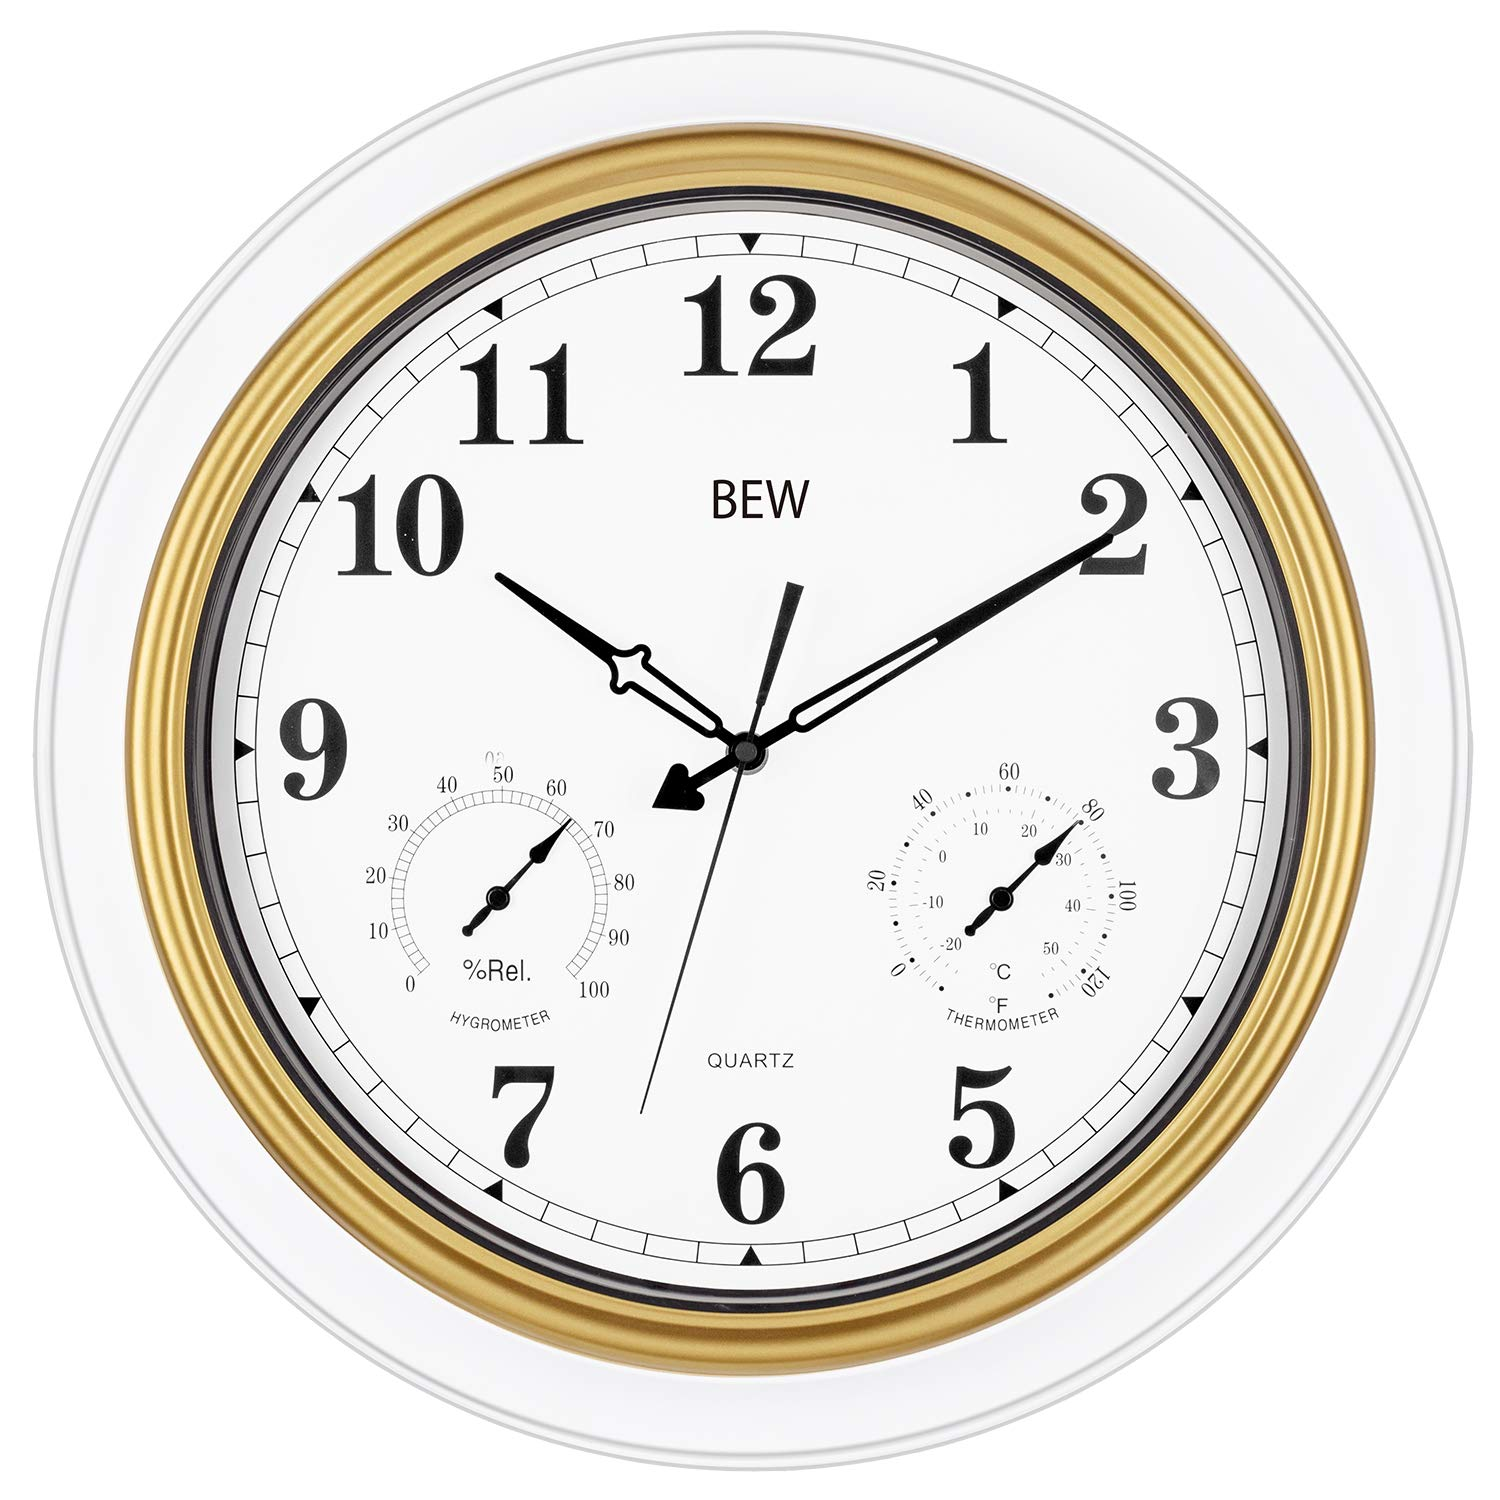 BEW Large Outdoor Clock, 18 Inch Thermometer & Hygrometer Combo, Waterproof & Weather Resisitant Function, Silent Garden Wall Clock for Patio/Pool/Lanai/Fence (Metal, White-Golden)